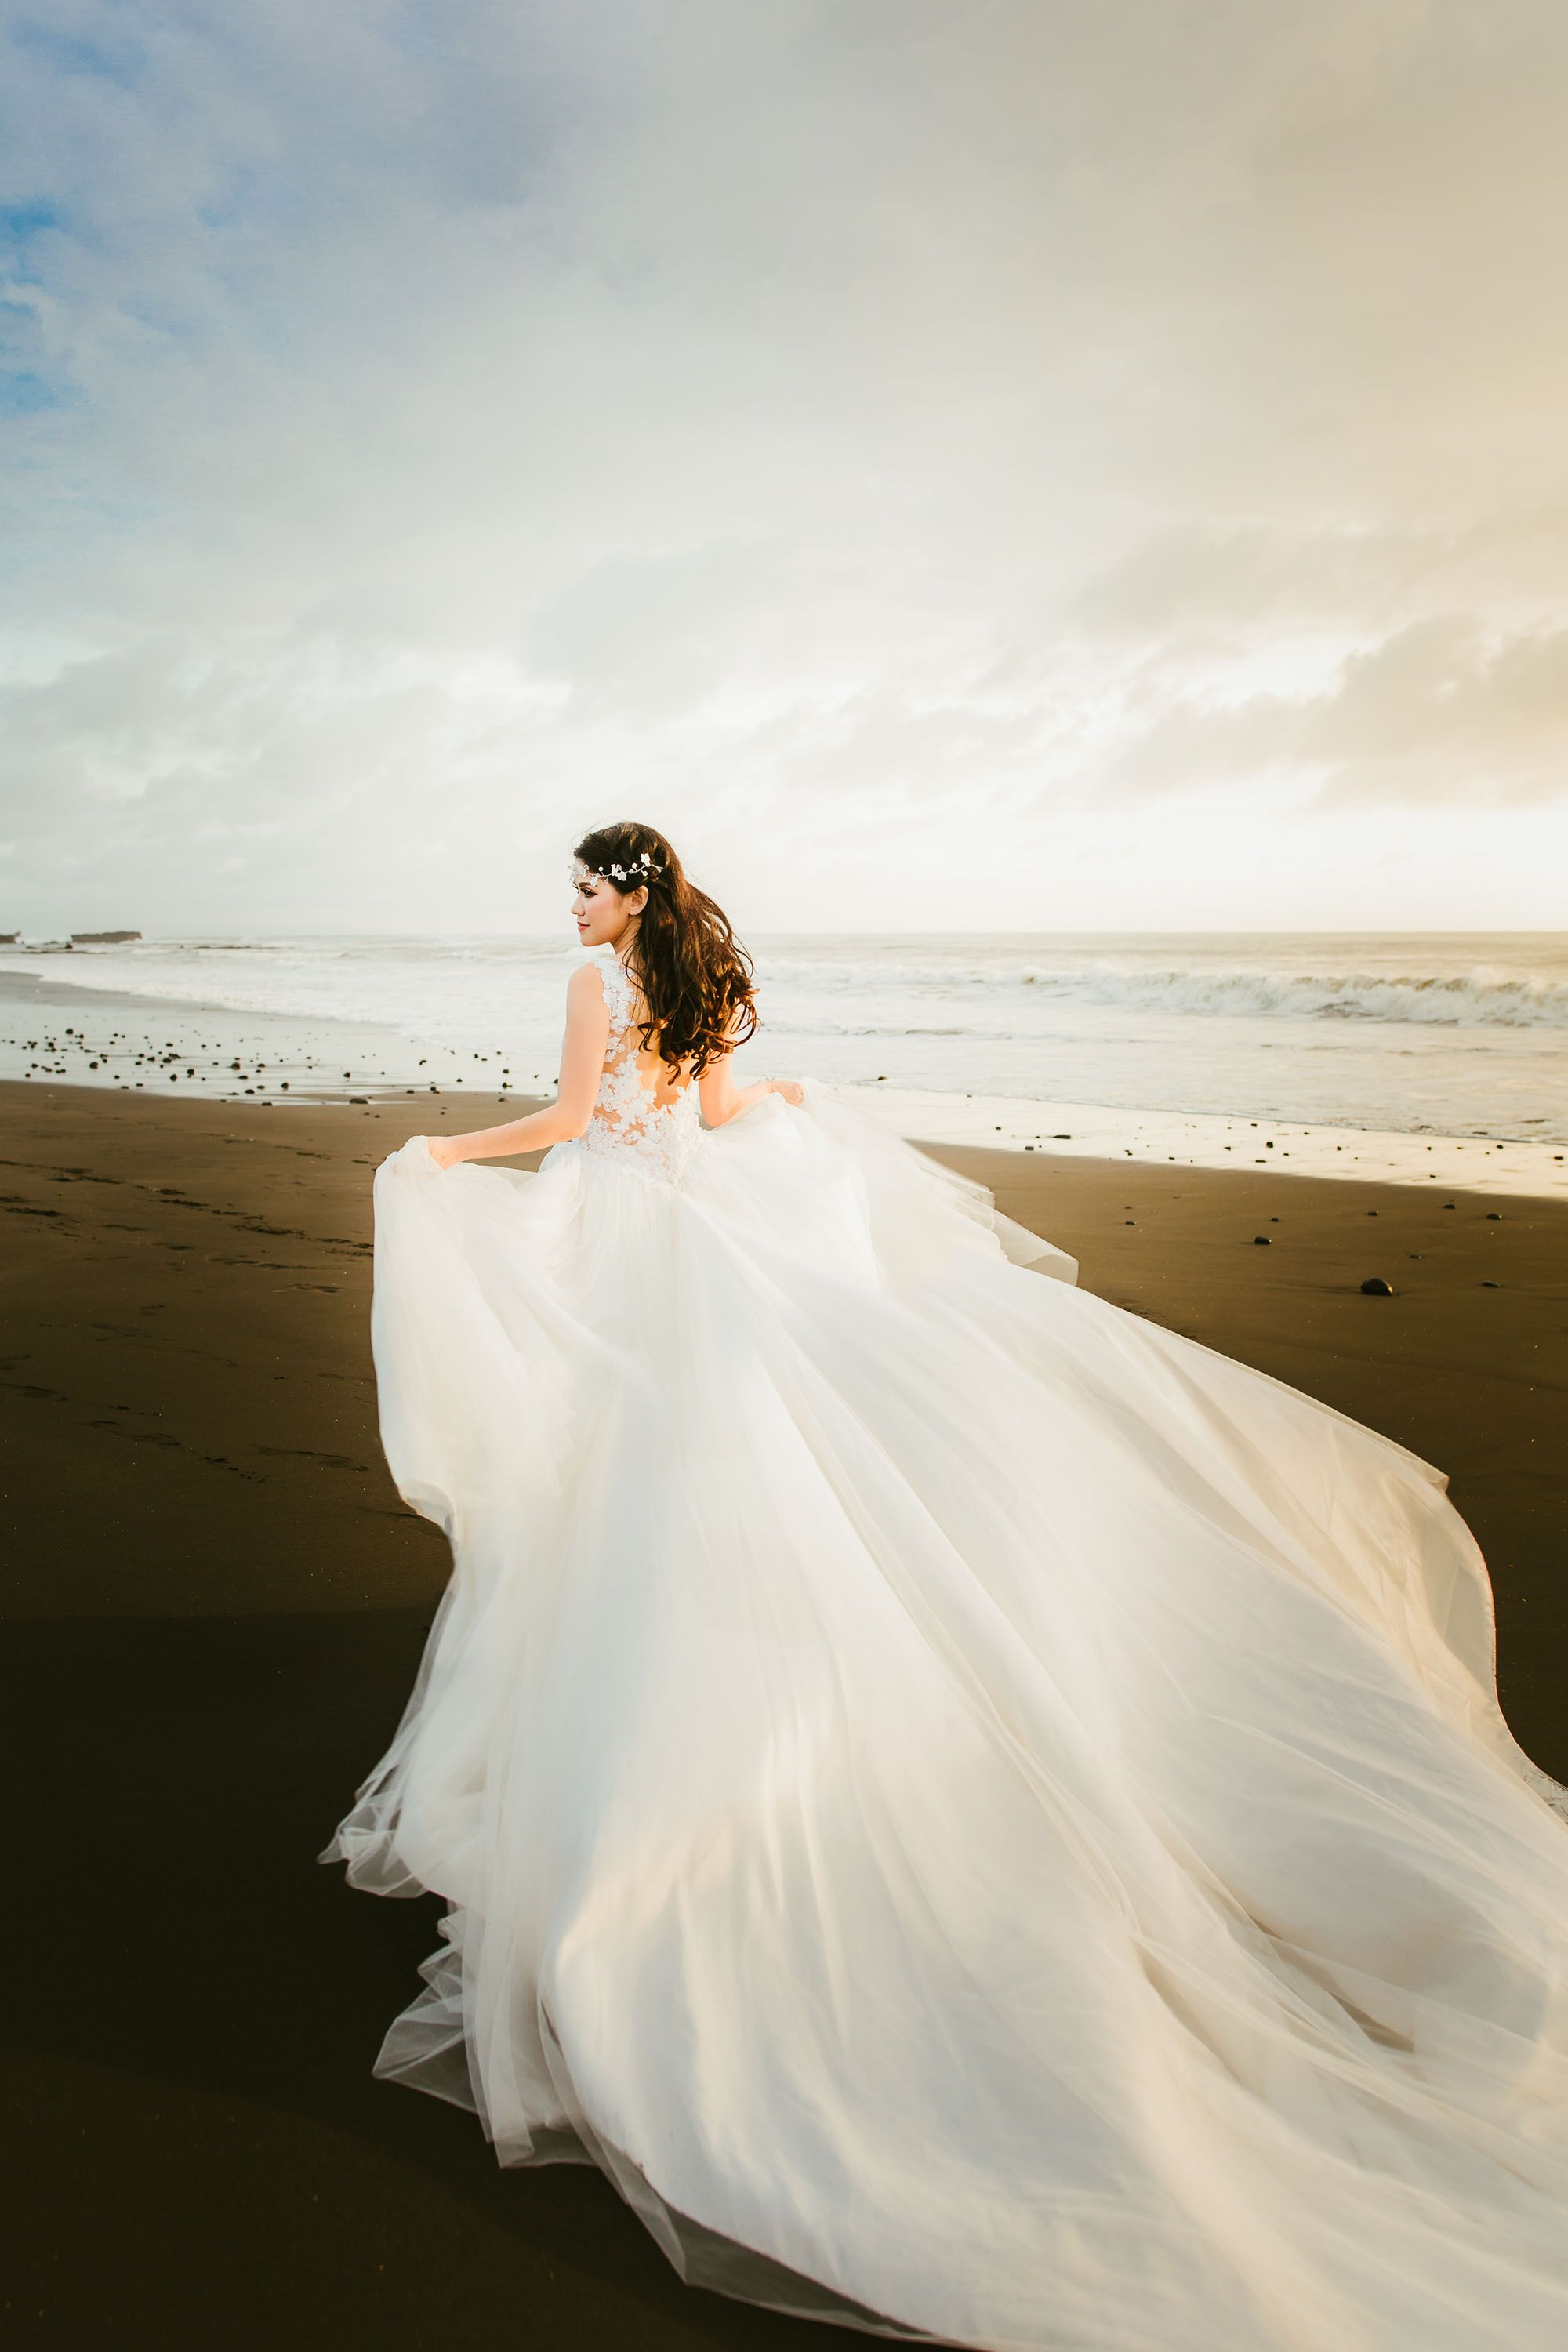 pre wedding photography singapore deal%0A Best Bali Prewedding by Bali Pixtura  Bali wedding photography  u     bali prewedding  photographer